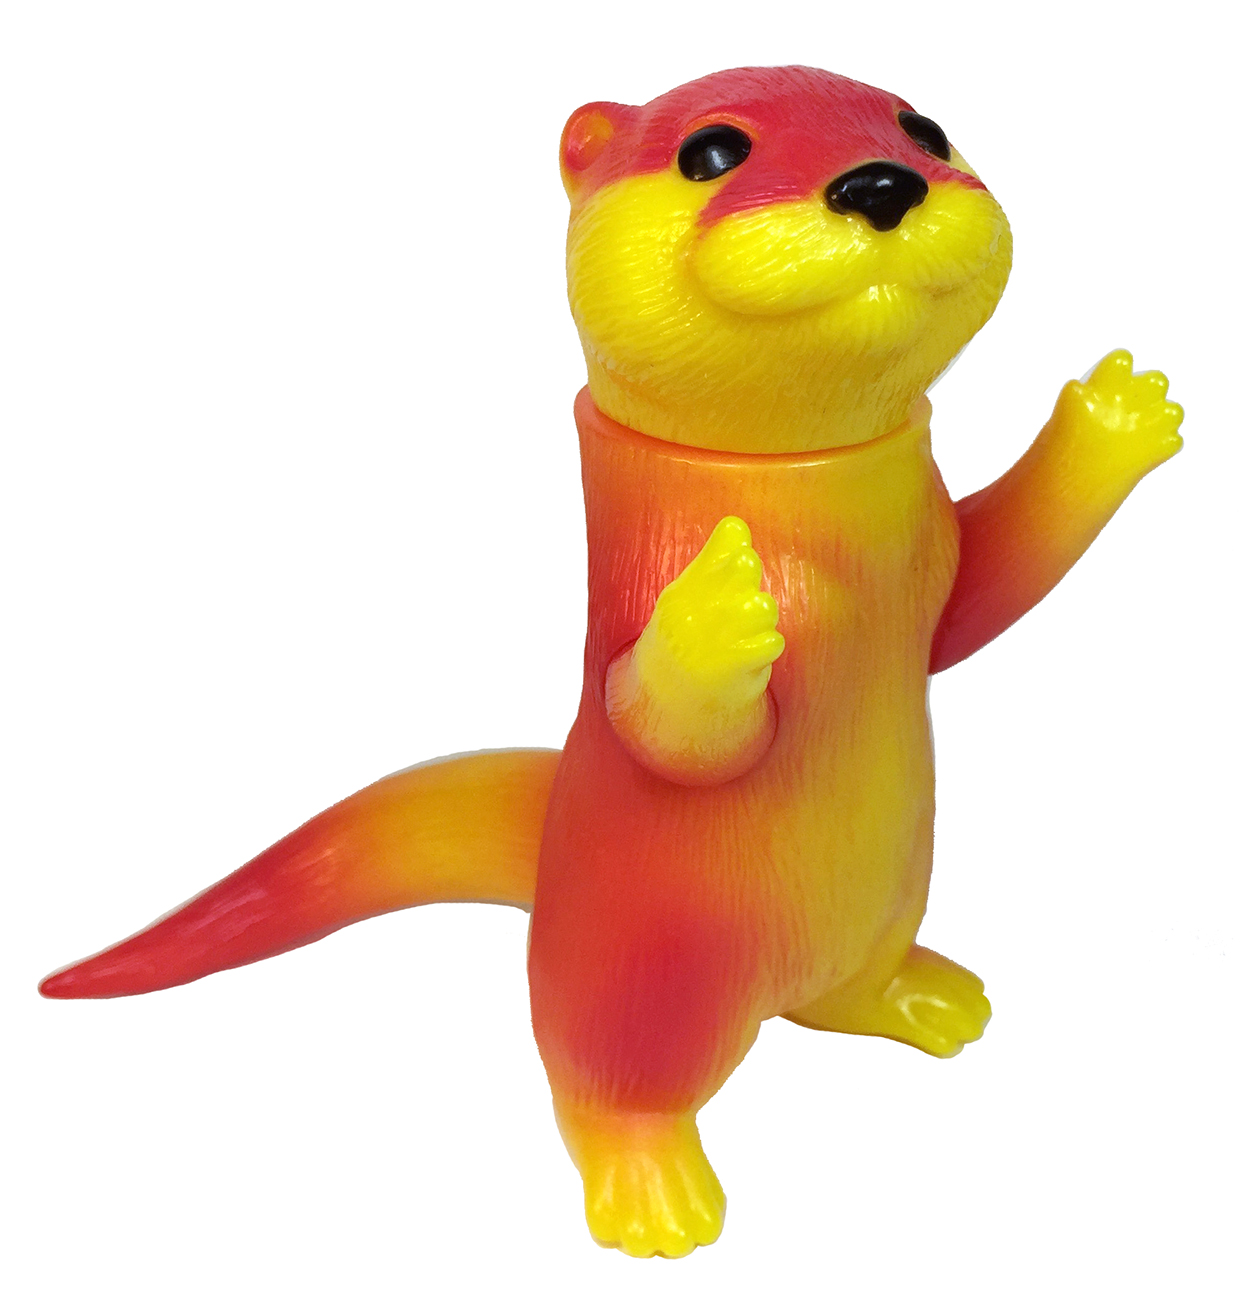 Ollie Otter Bright Yellow version Cute kaiju